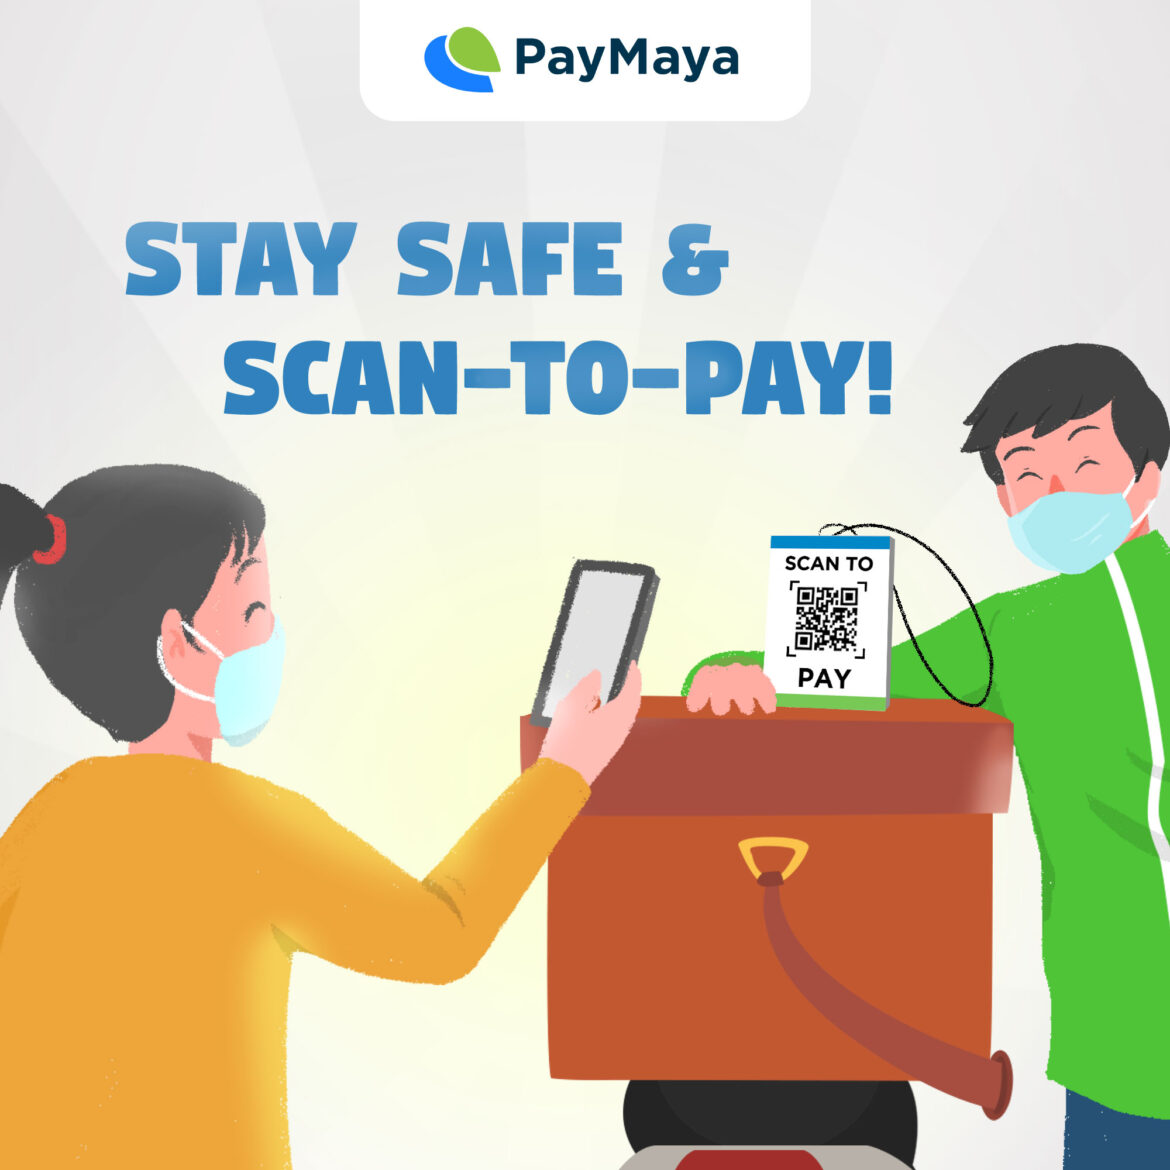 Cashless on Delivery' is the new 'COD' when ordering online with PayMaya